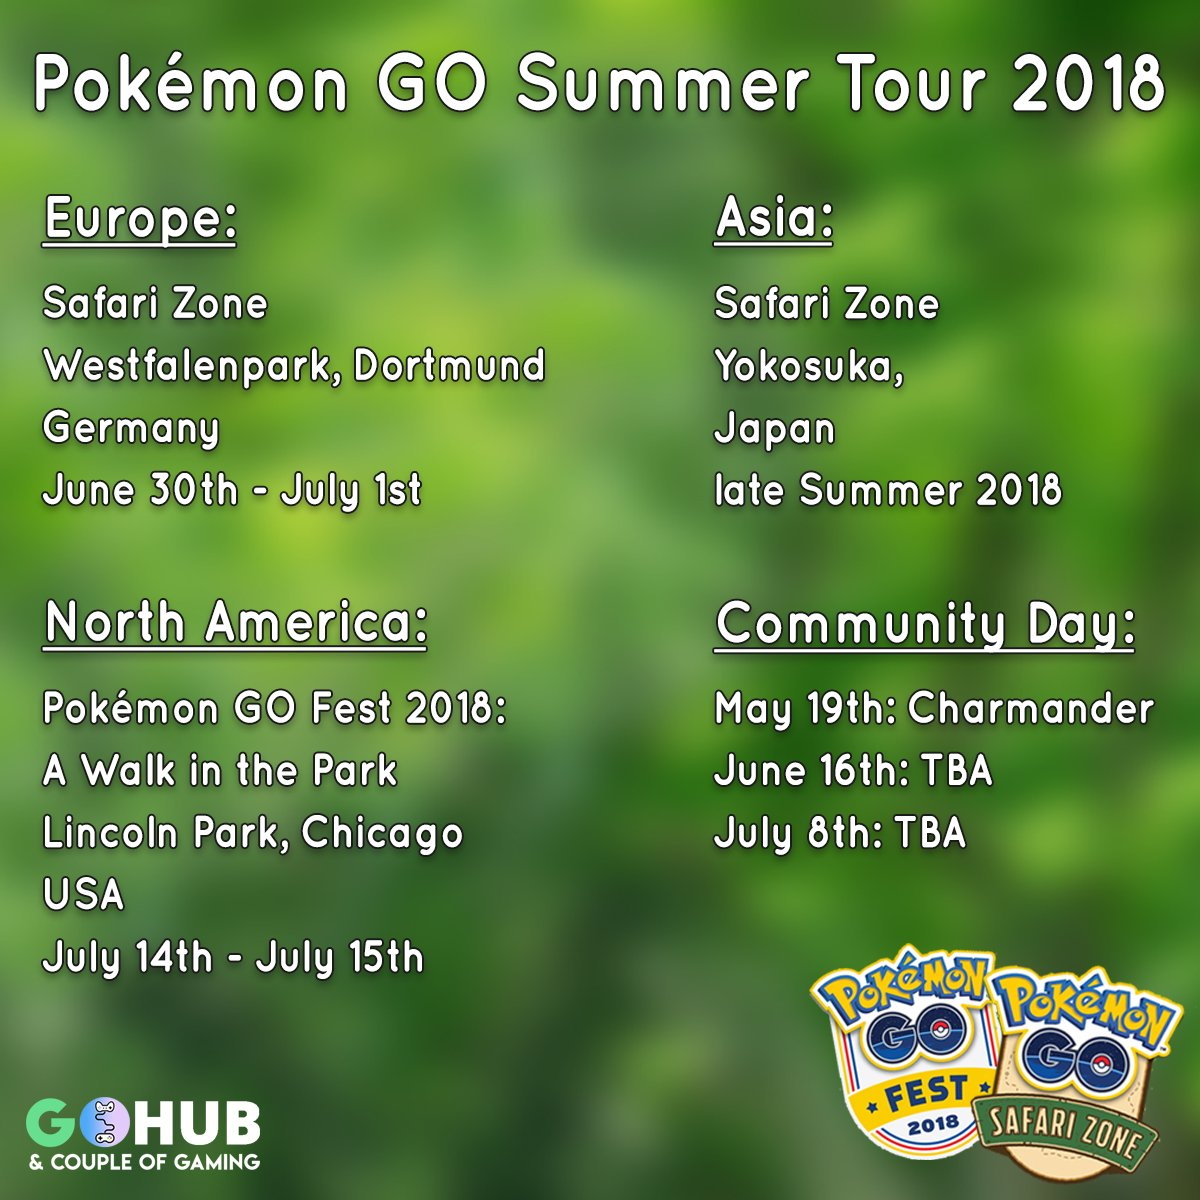 Pokémon GO Summer Tour 2018